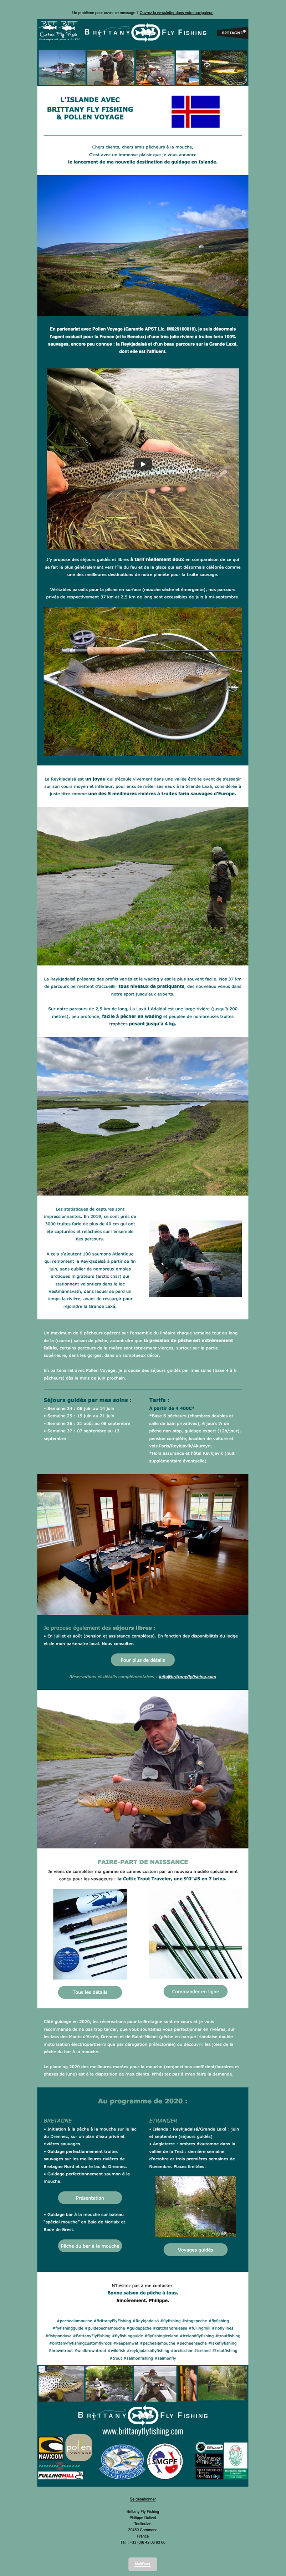 brittany-fly-fishing-actu-islande